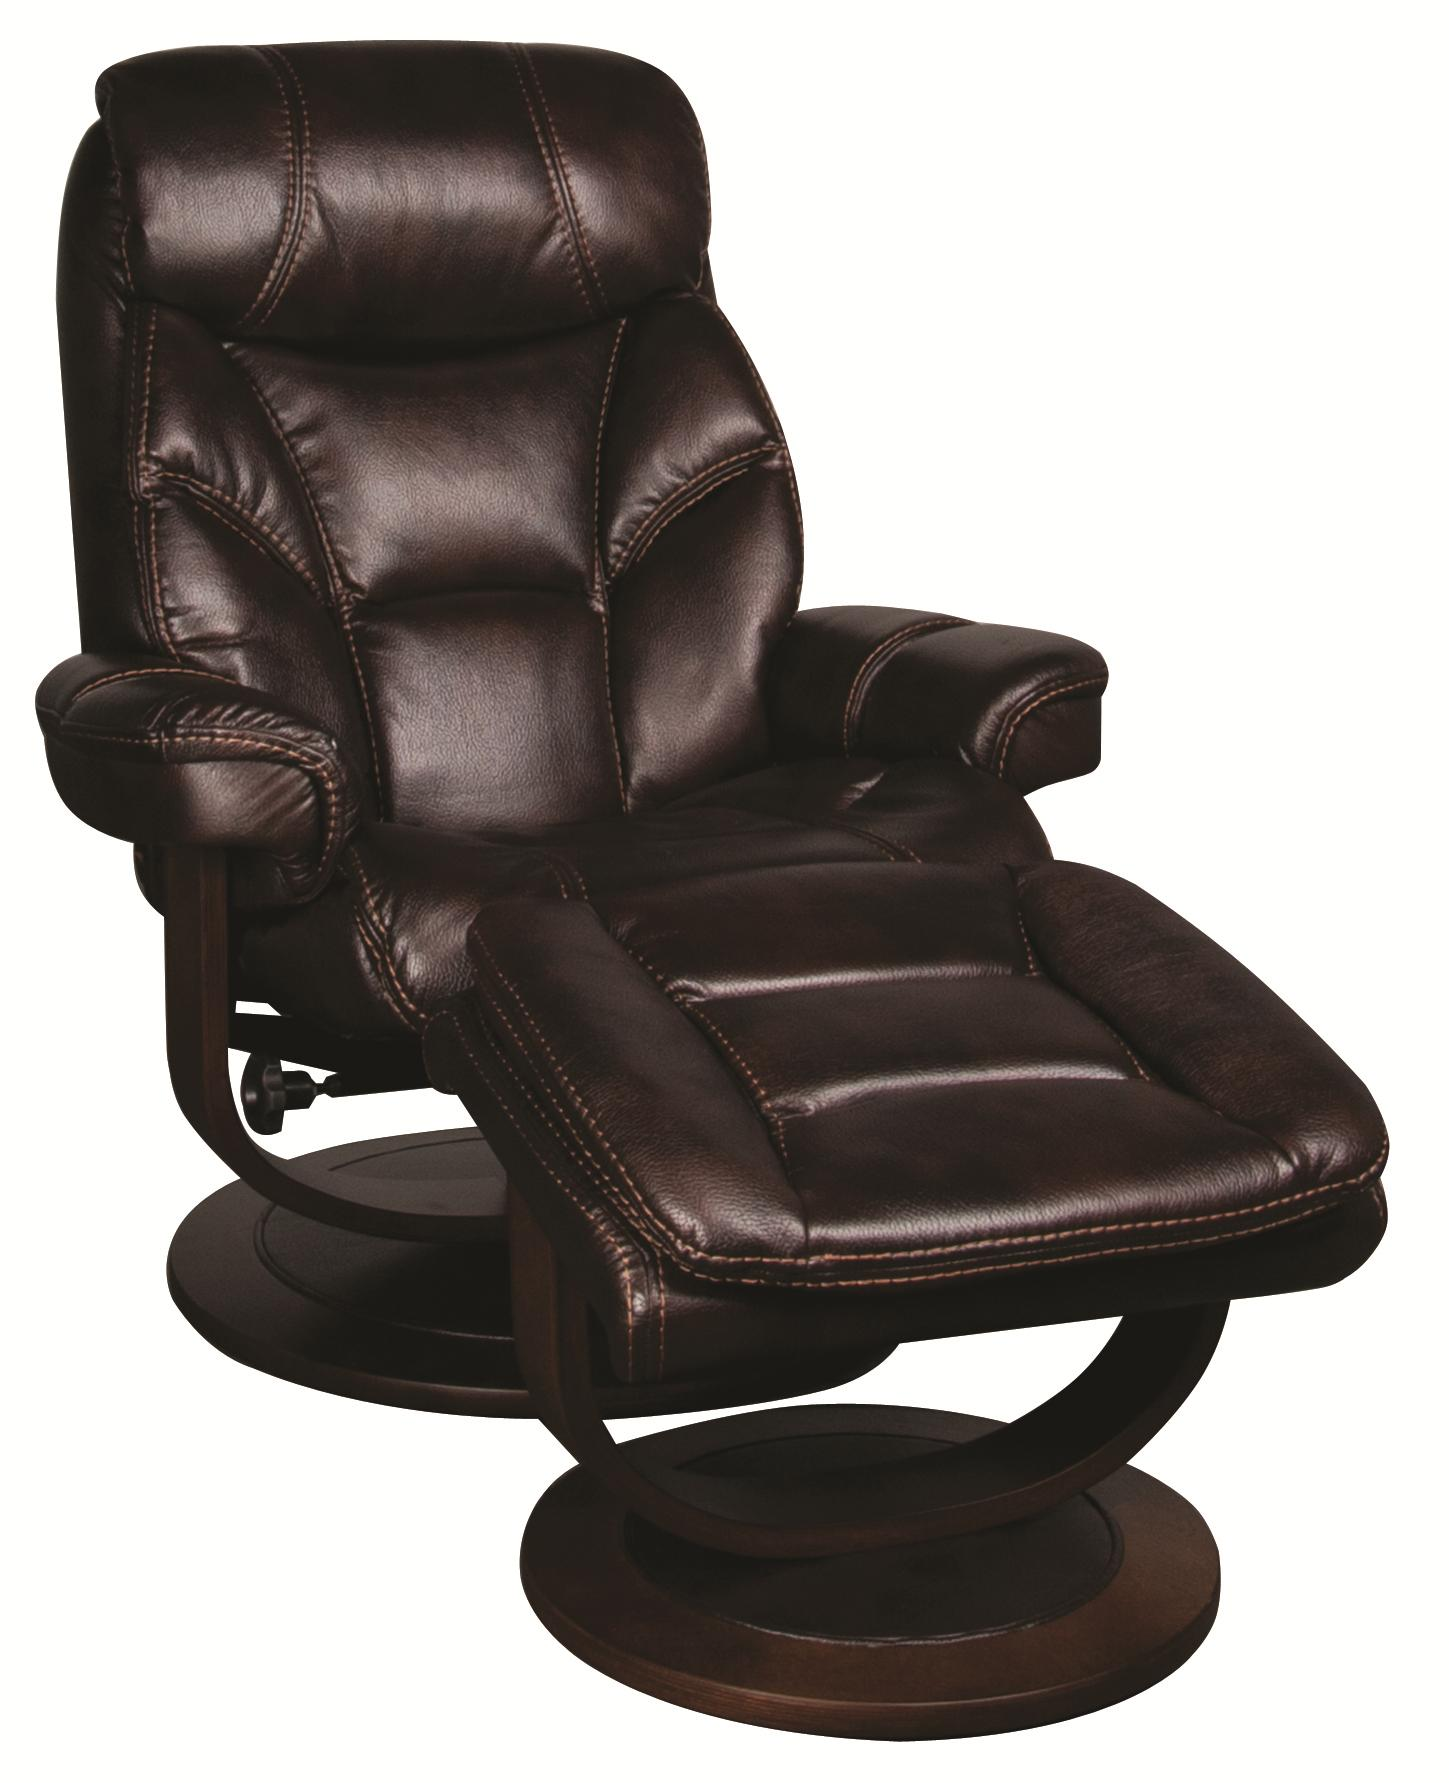 Saul Saul Swivel Recliner with Ottoman Morris Home Reclining